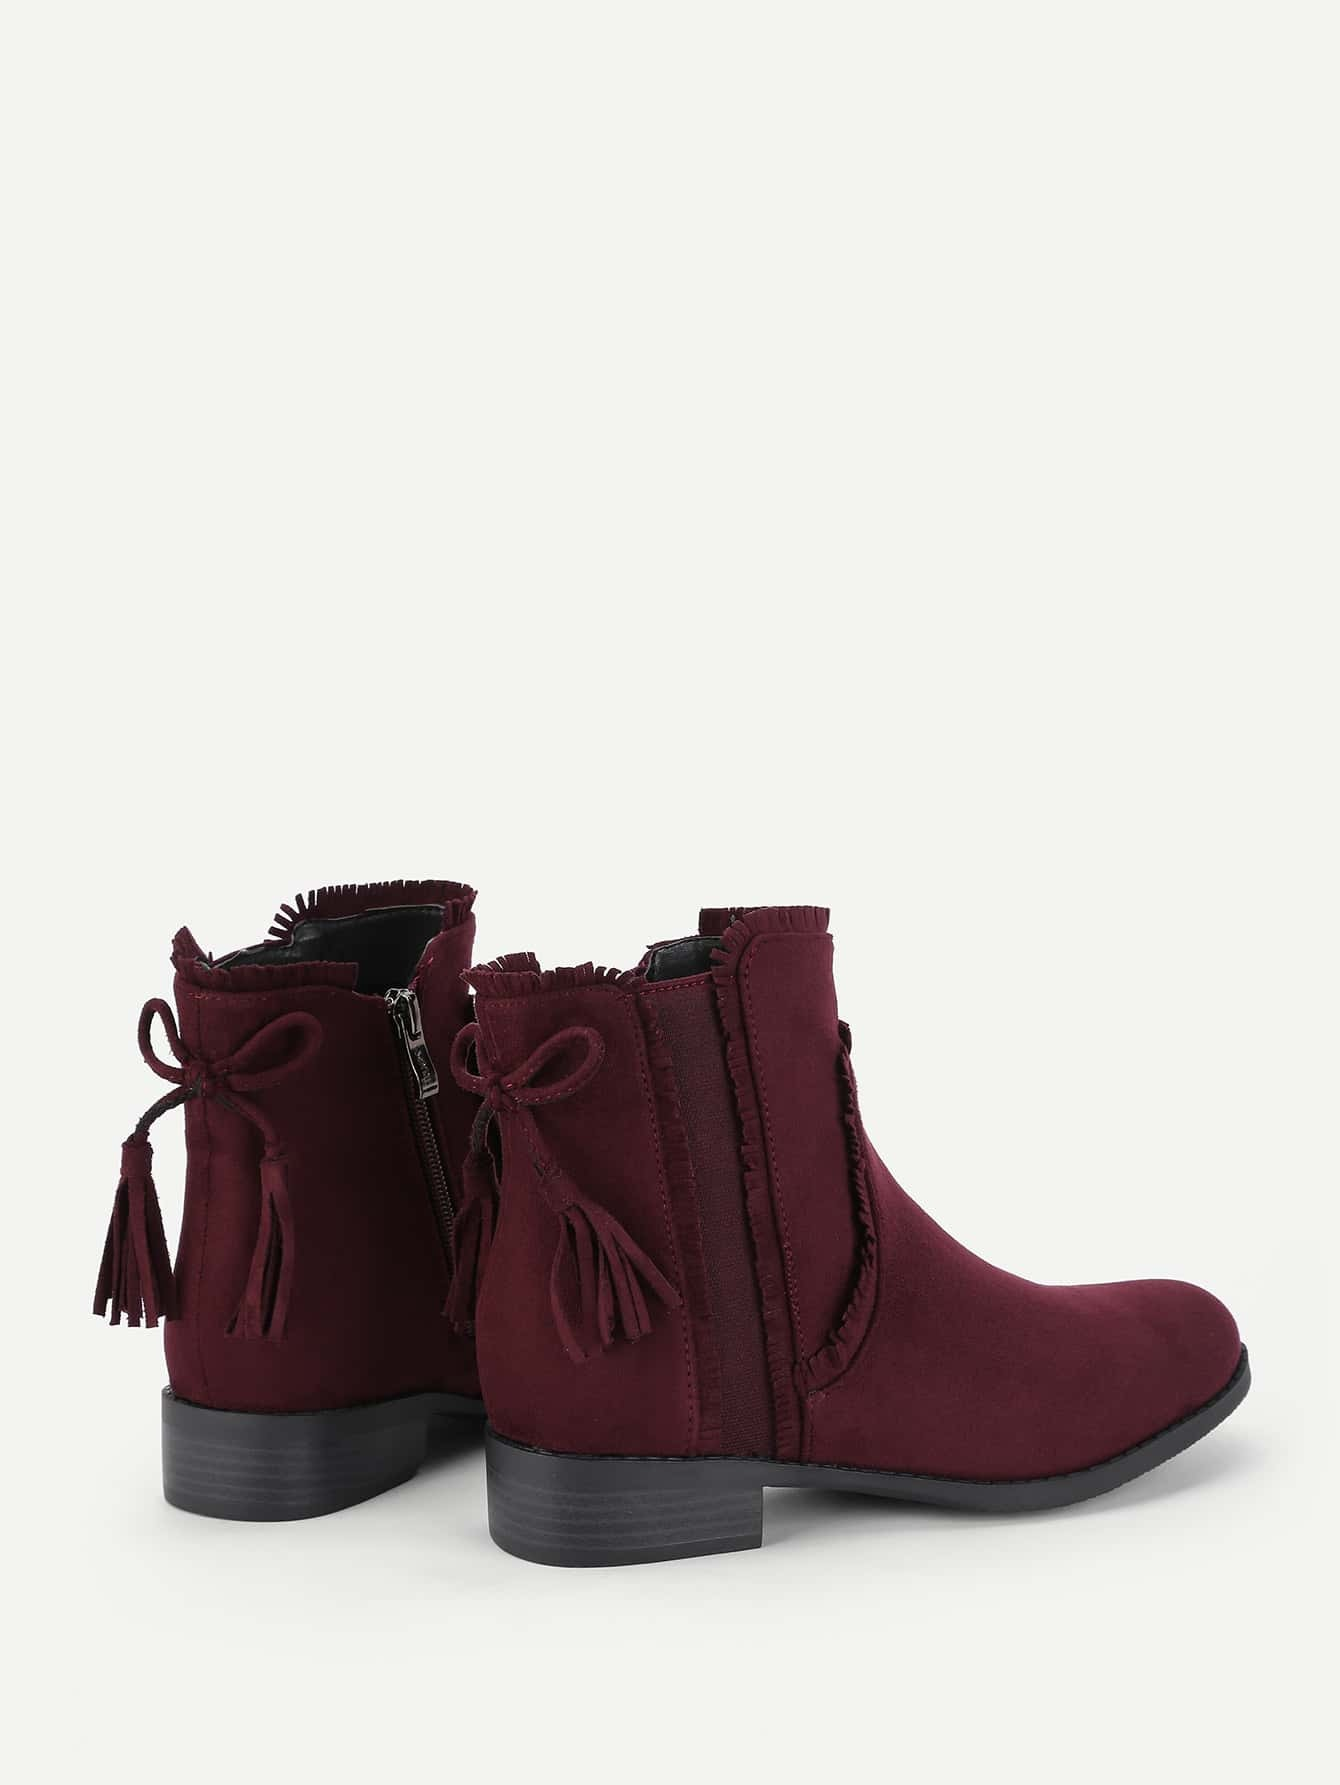 Tassel Bow Back Block Heeled Ankle Boots